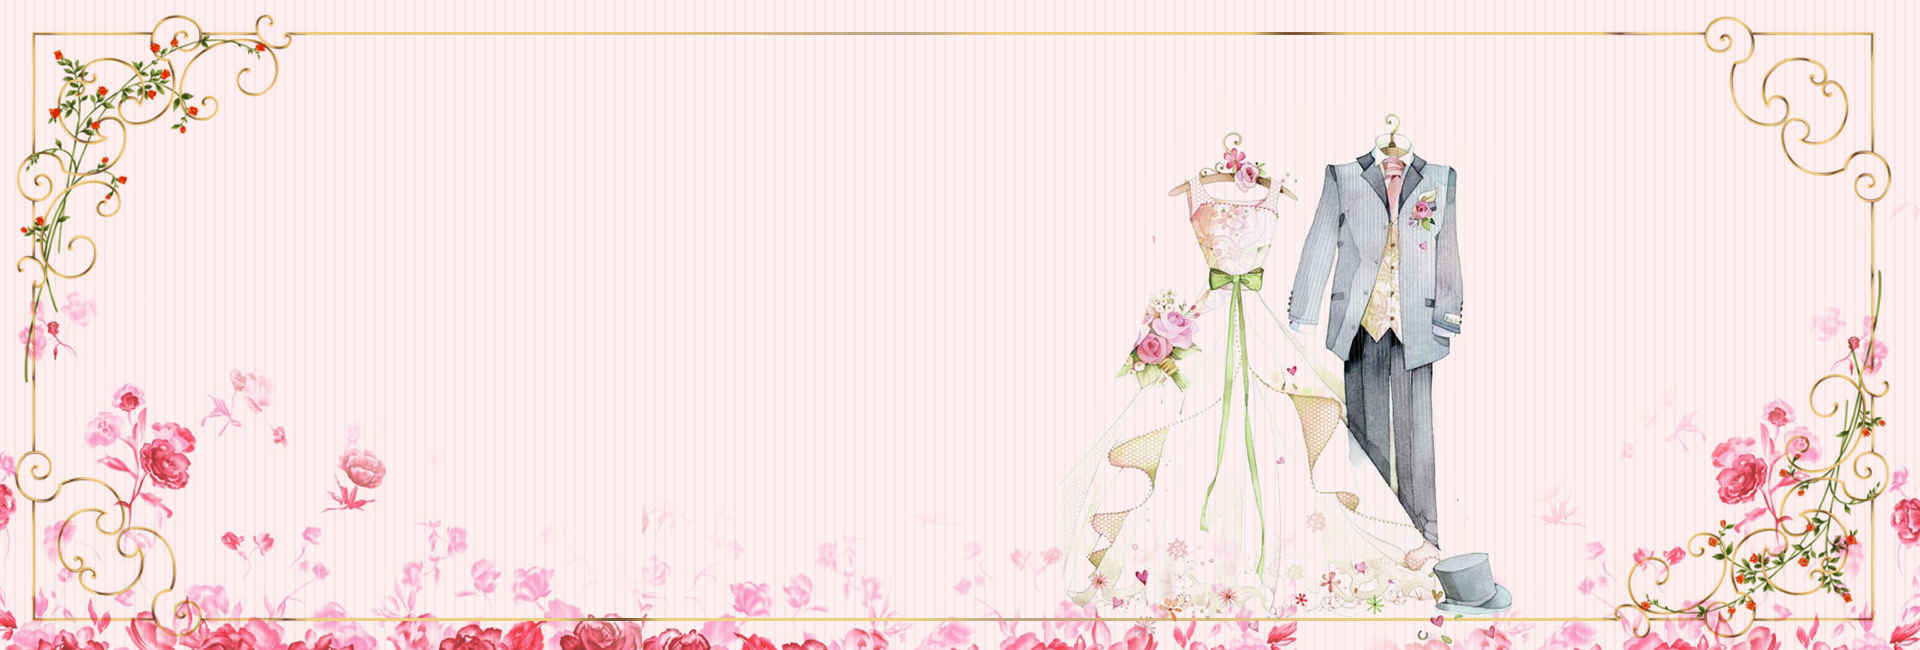 Background Pictures For Wedding Invitations: Wedding Card Background Photos, Wedding Card Background